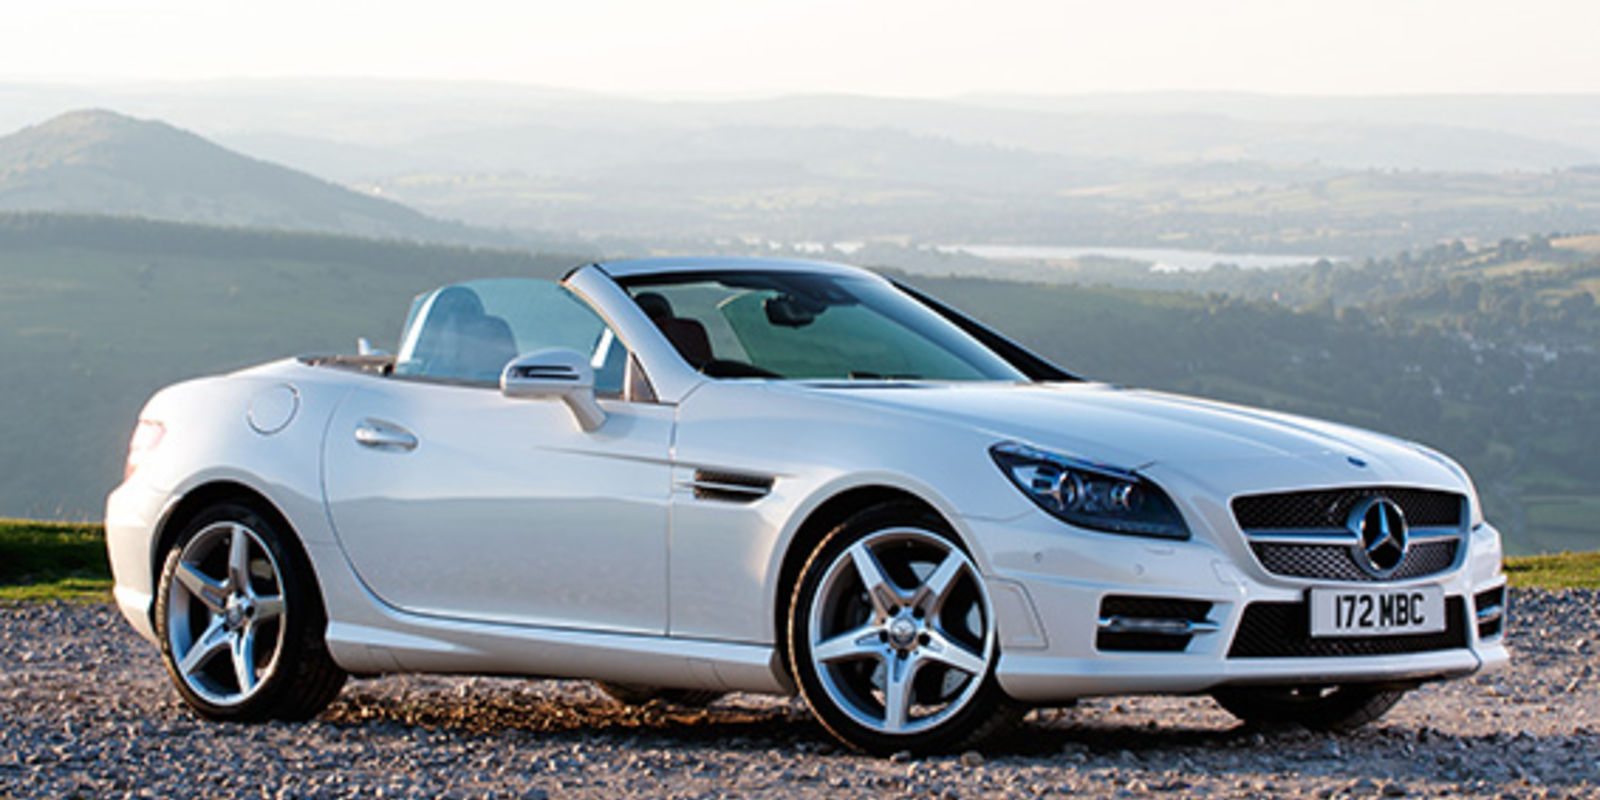 Mercedes Slk Review The Car For You Carwow